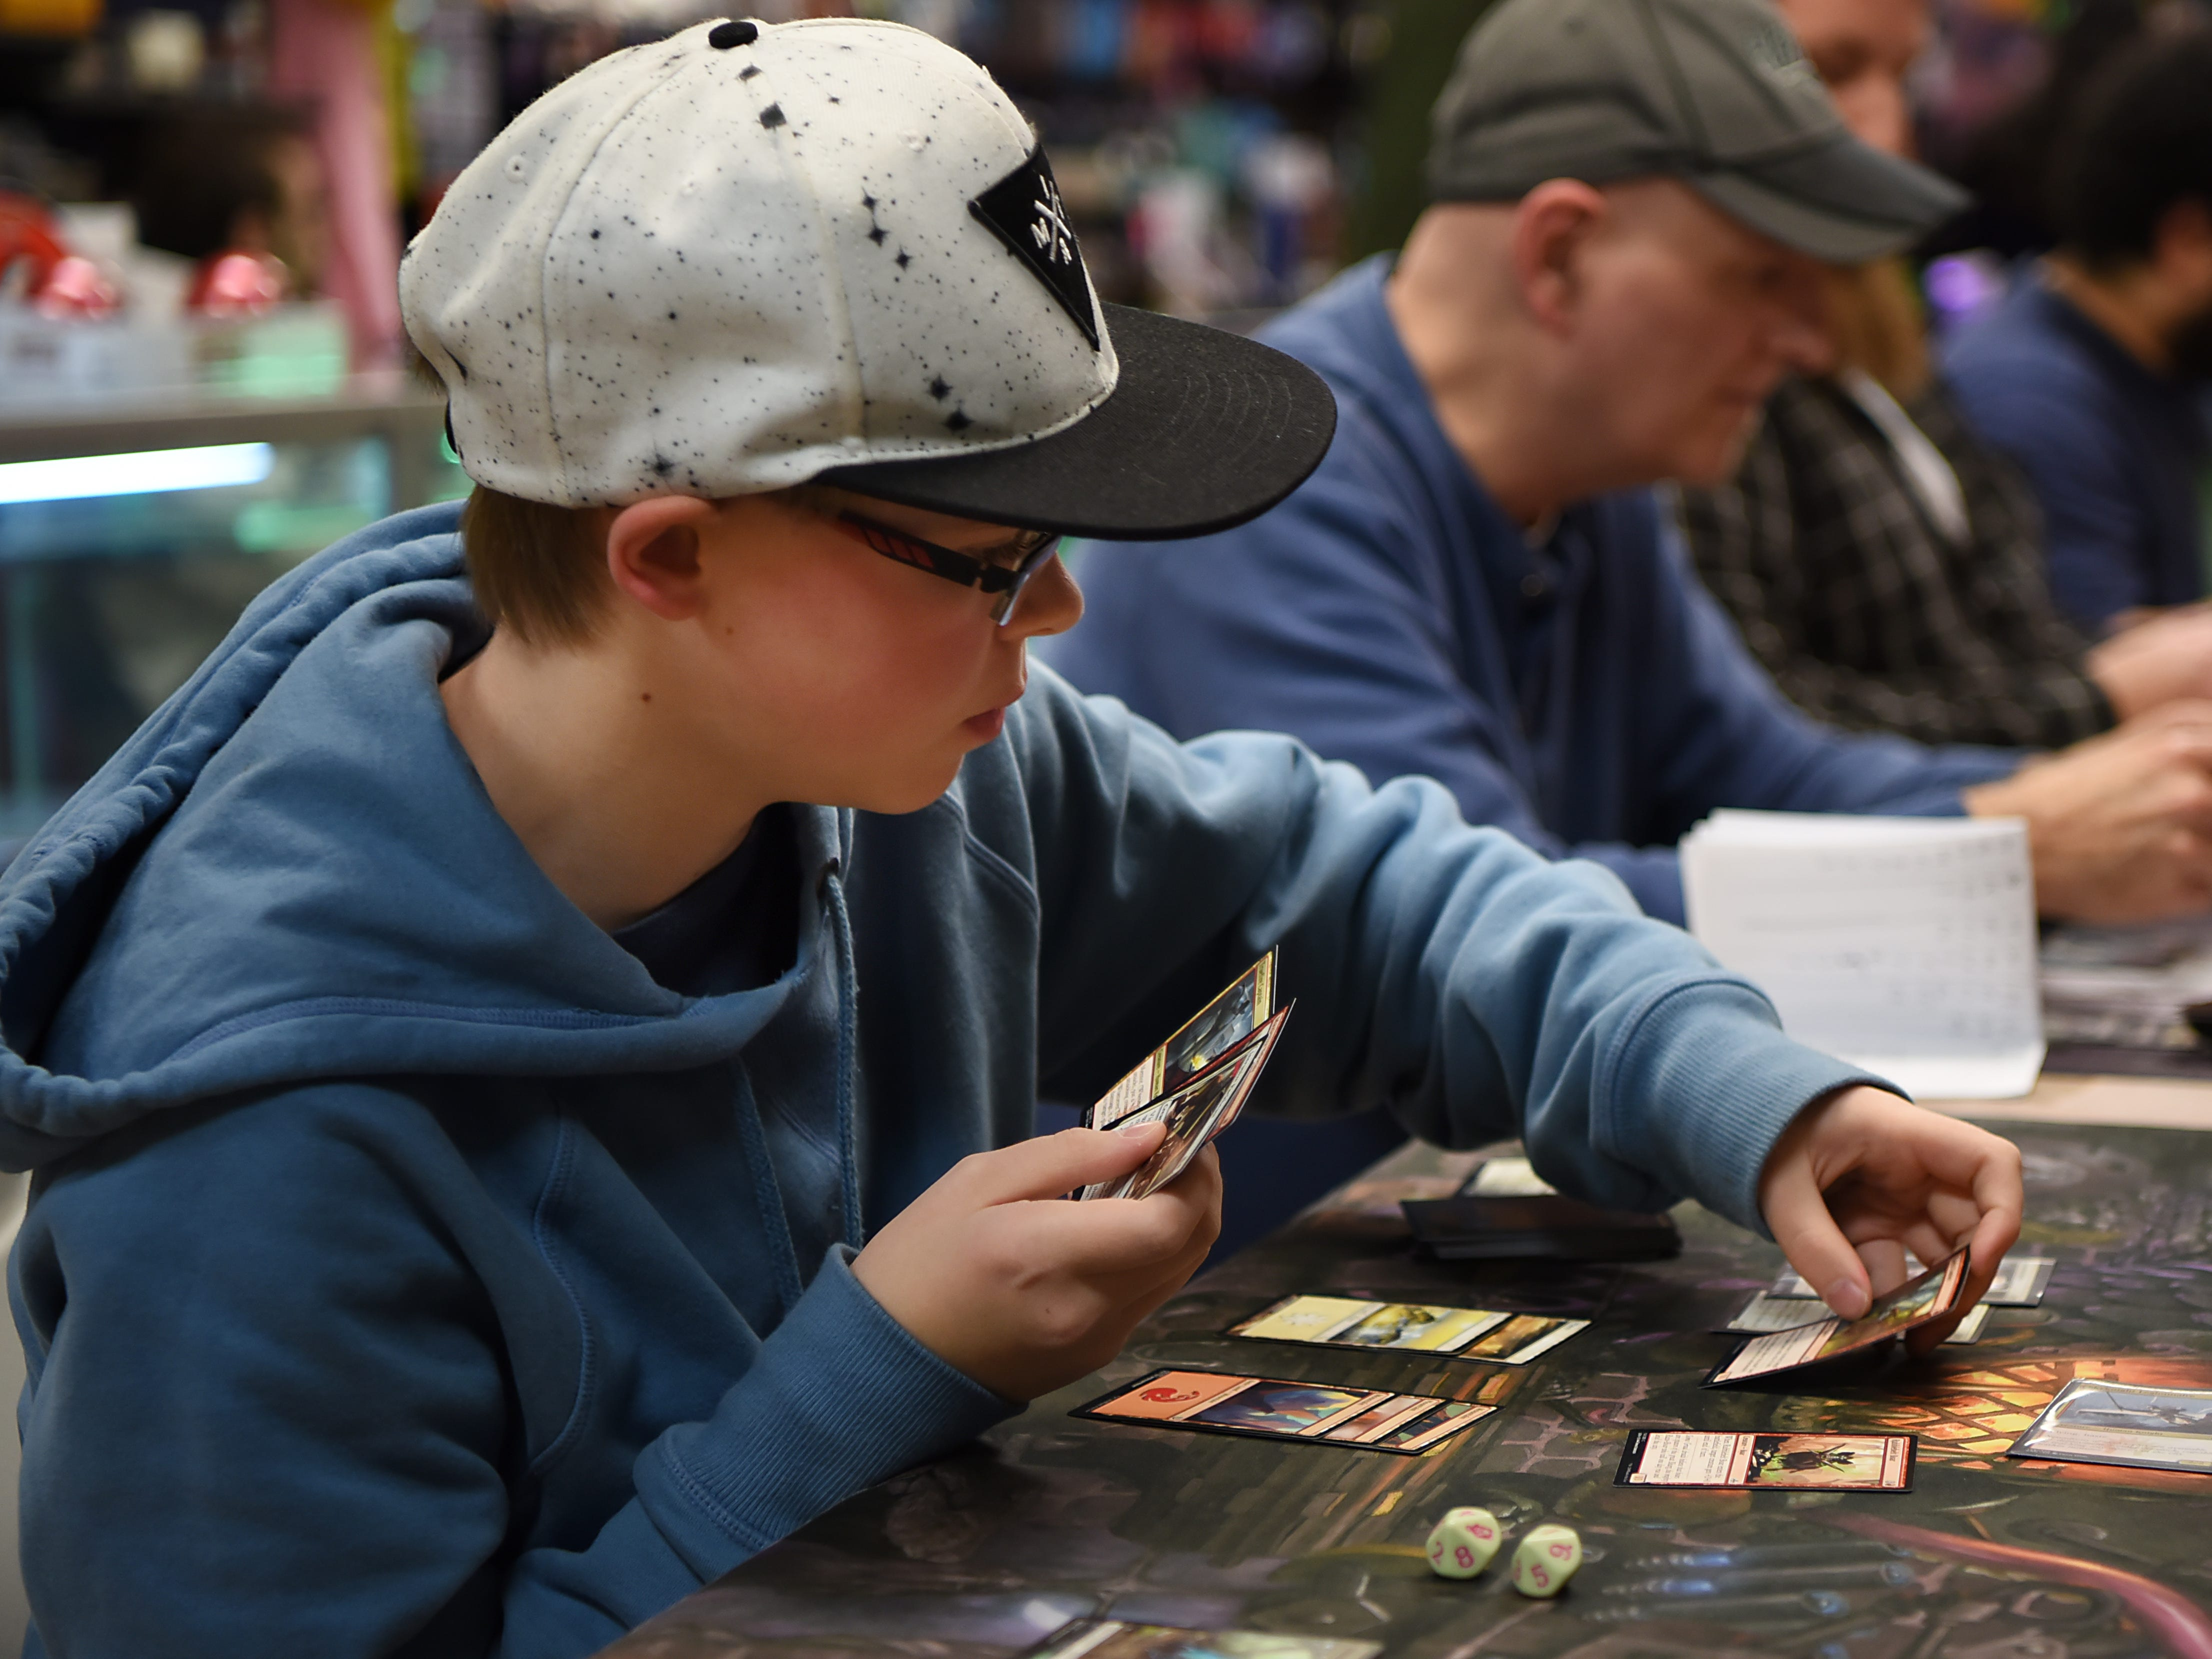 Leo Hutcheson - 13 from Pompton Lakes plays Magic: The Gathering at Level 1 Games in Pompton Plains on Friday November 30, 2018.